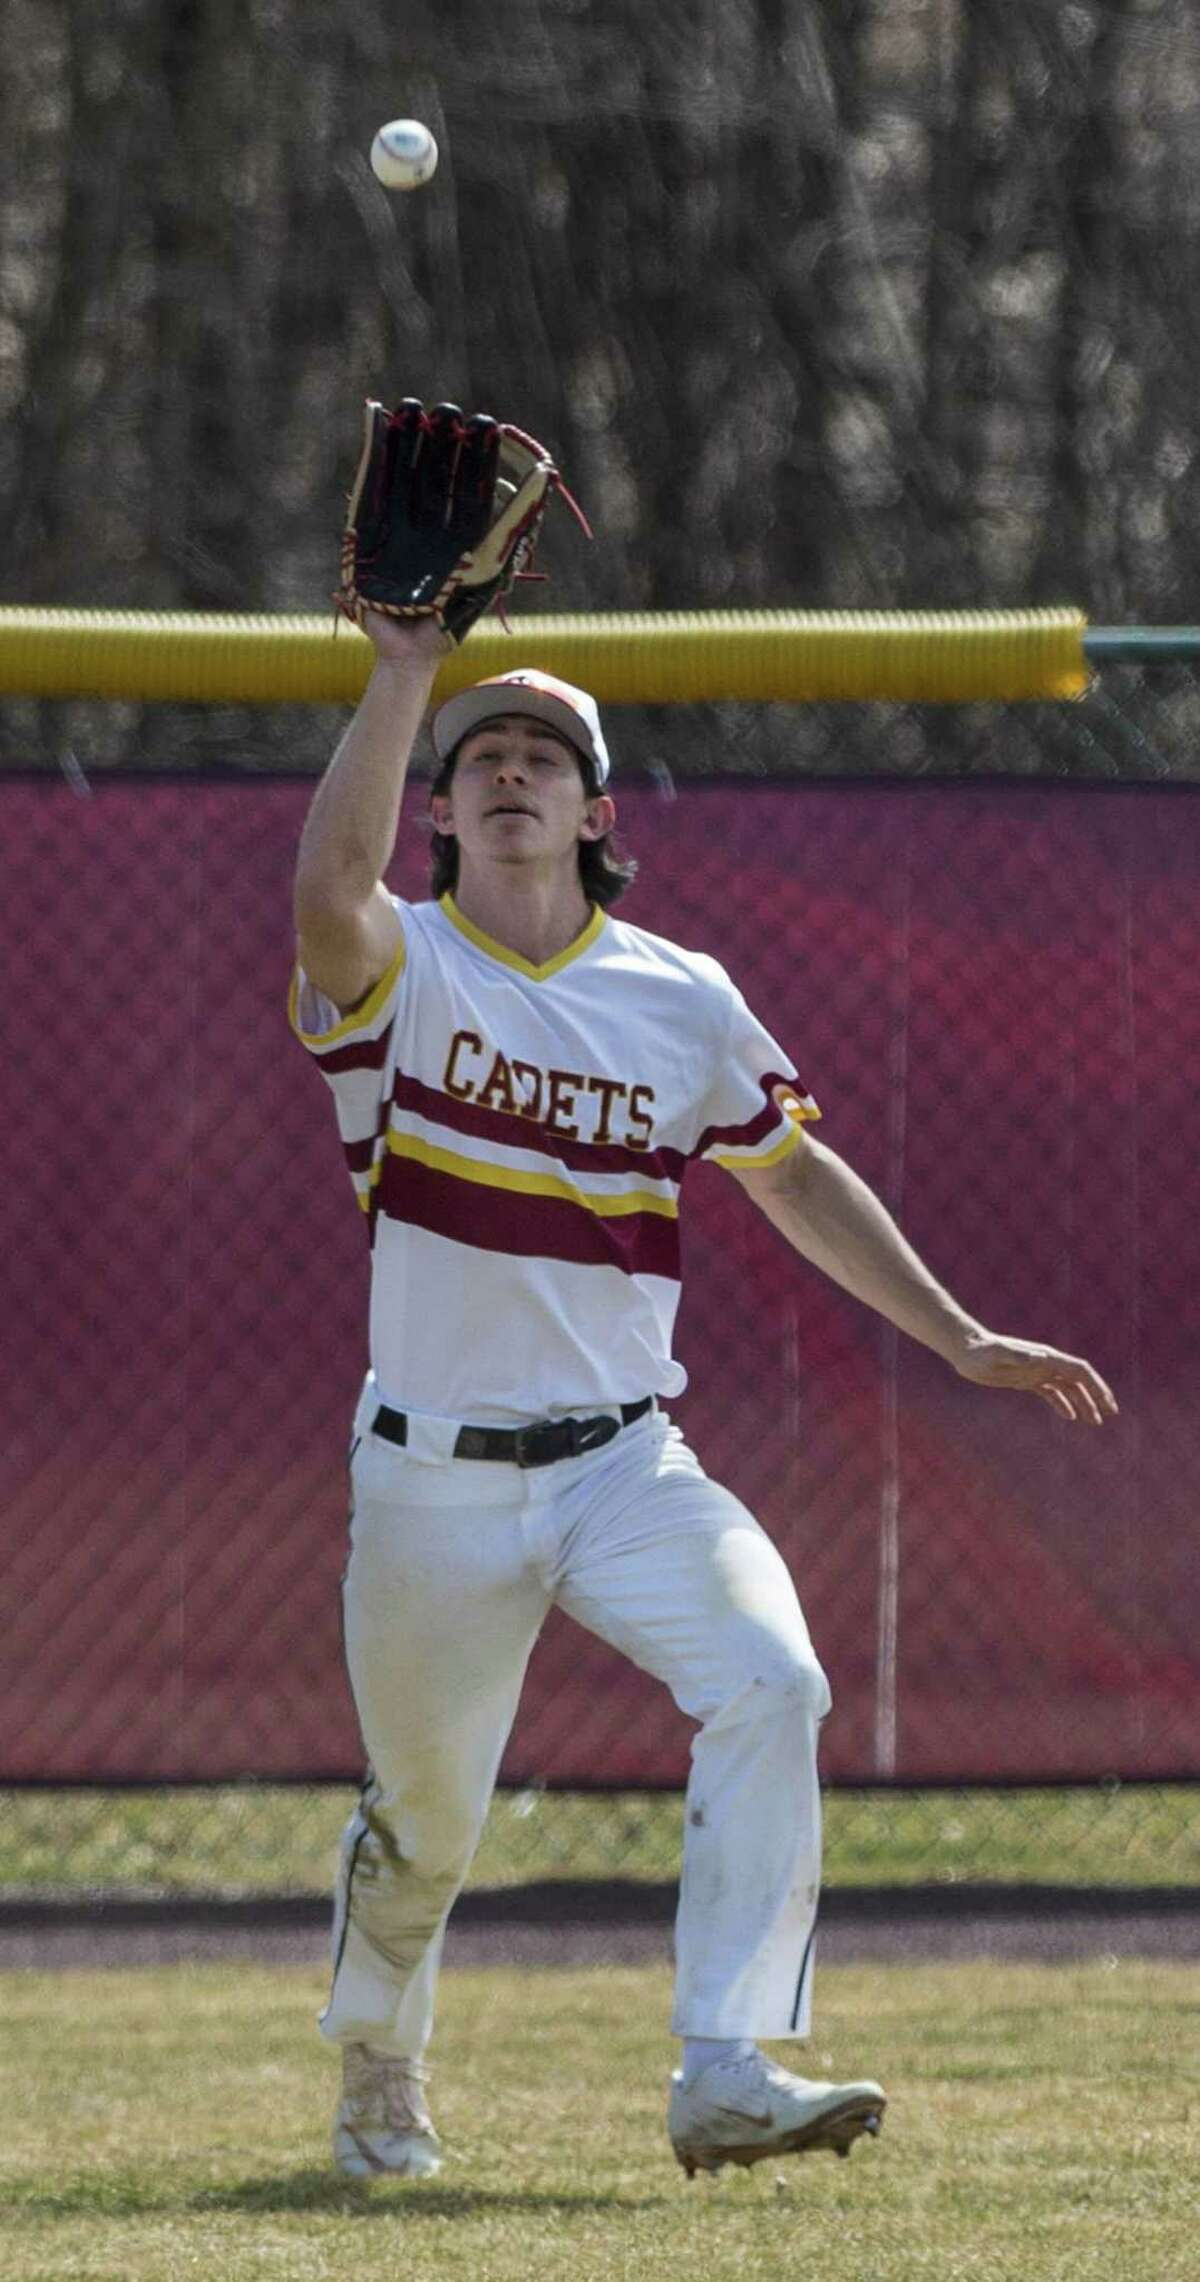 St. Joseph High School centerfielder Stephen Paolini catches a fly ball against Bethel on March 30 at St. Joseph High School in Trumbull.